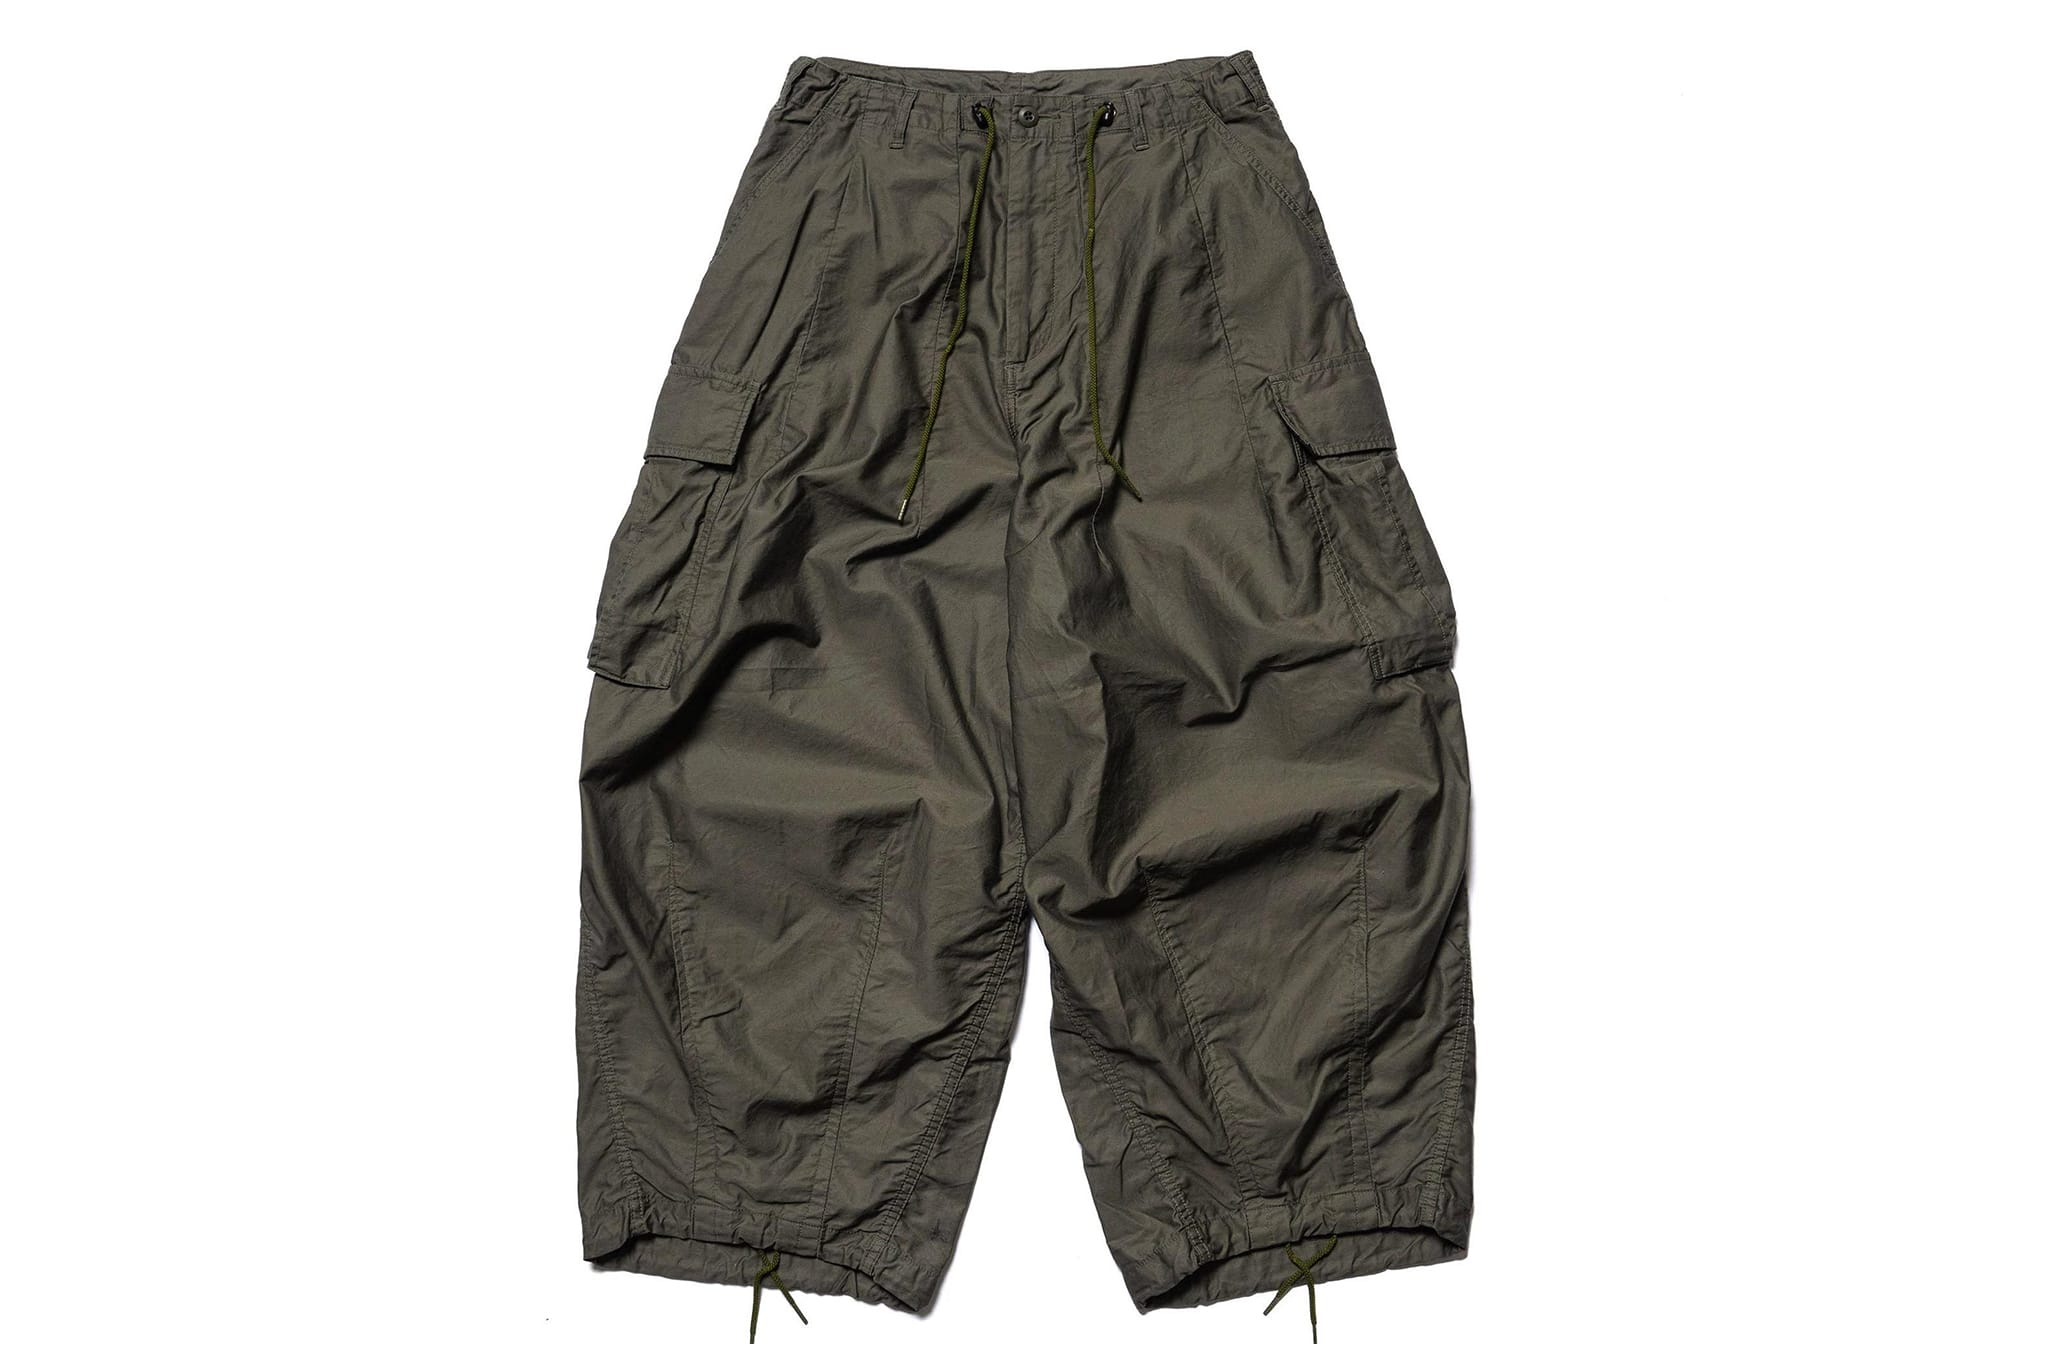 HAVEN needles bdu cargo pant olive nepenthes havenshop rebuild by needles new york japan